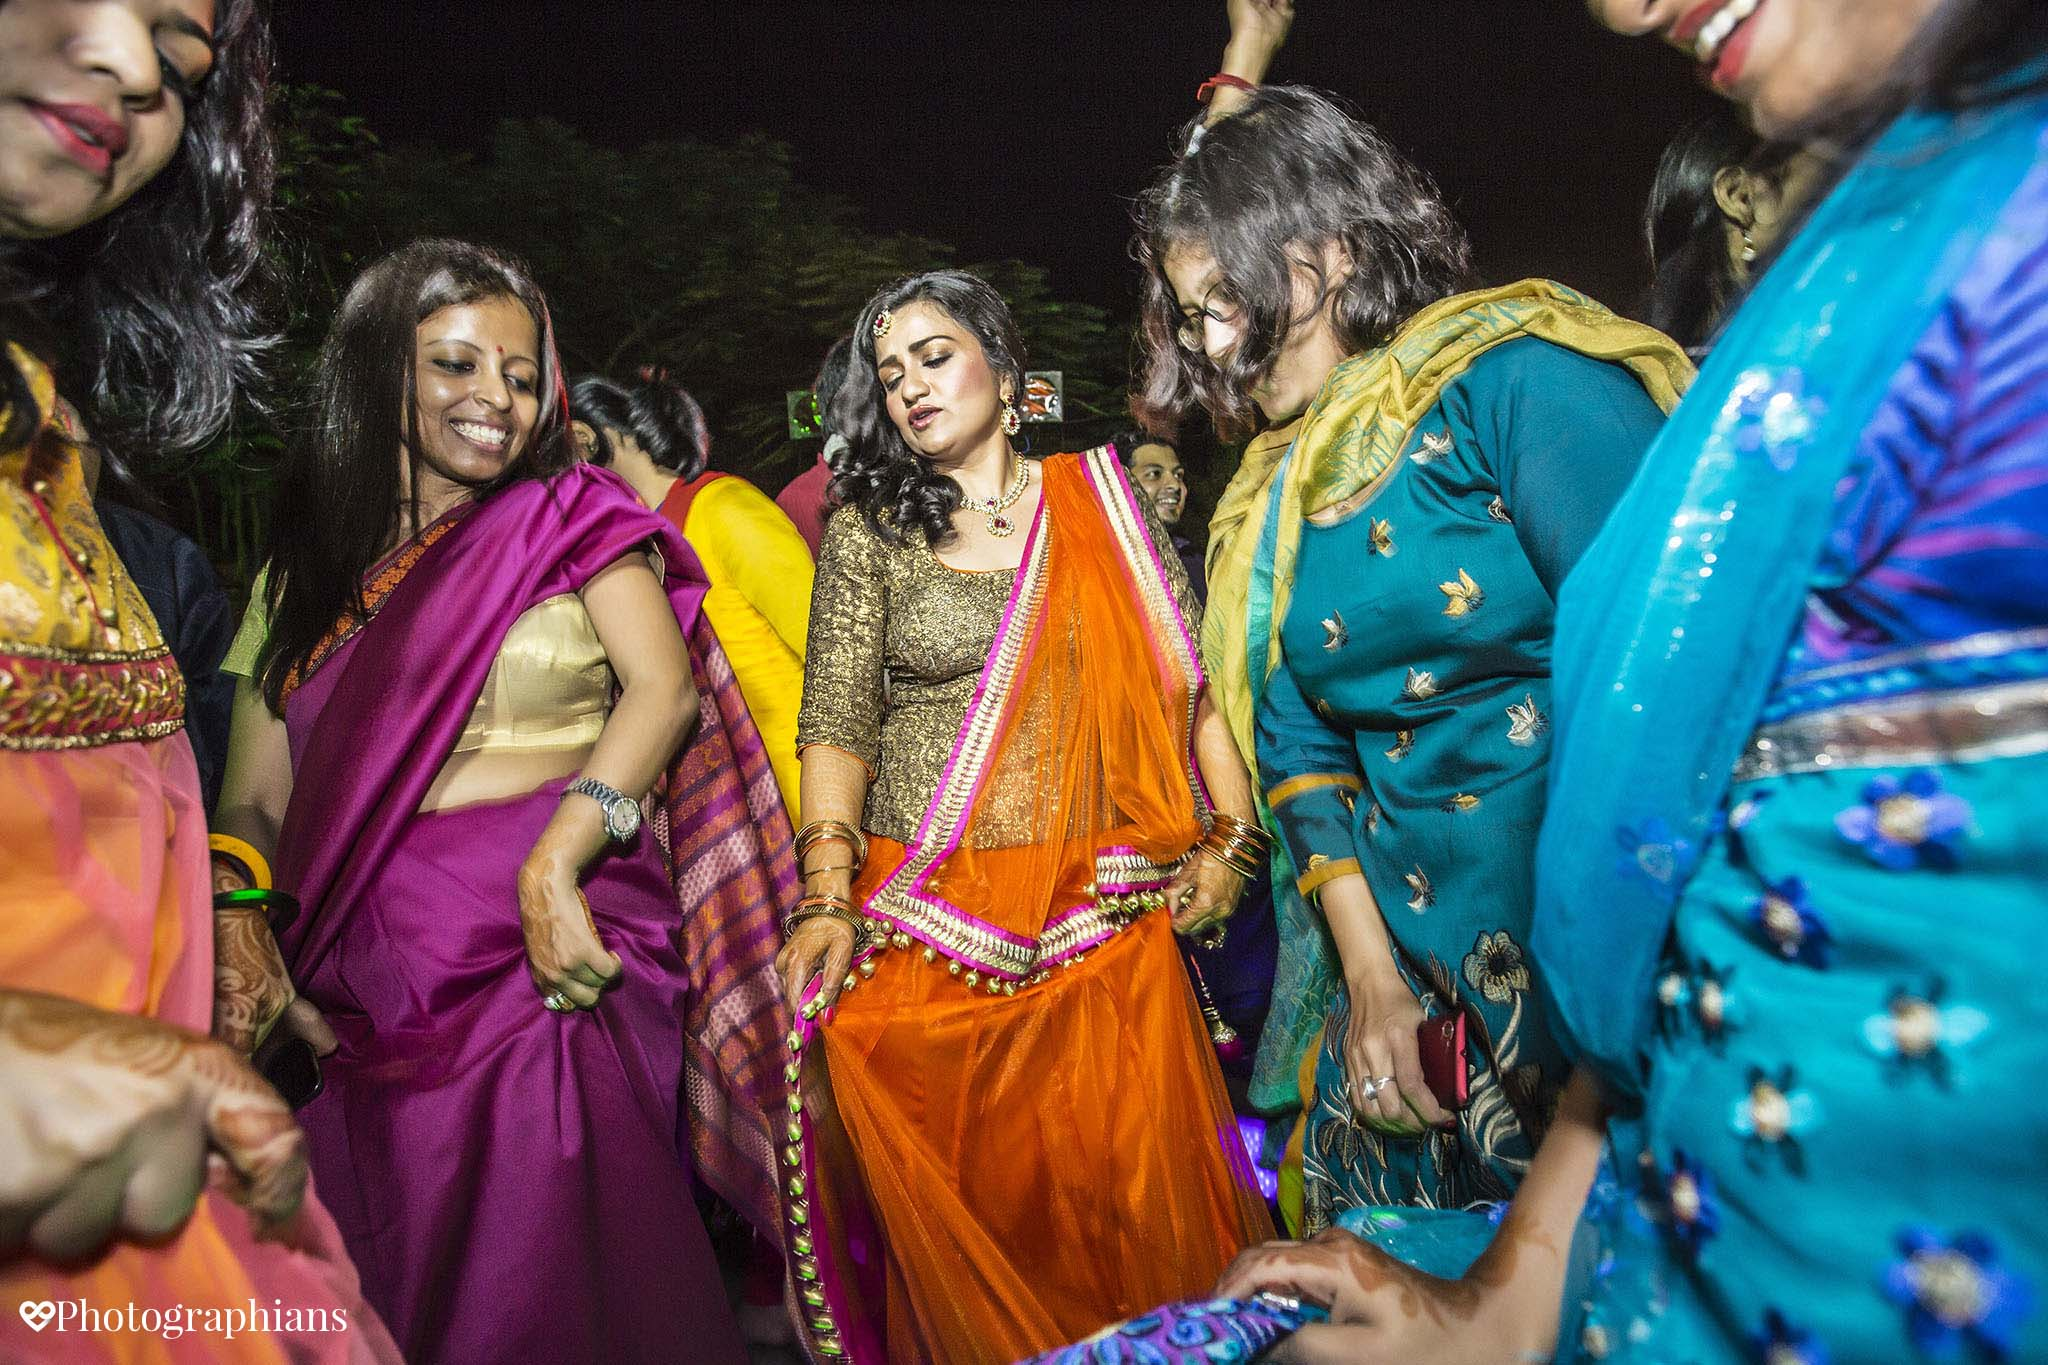 Photographians_Indian_Destination_Wedding_182